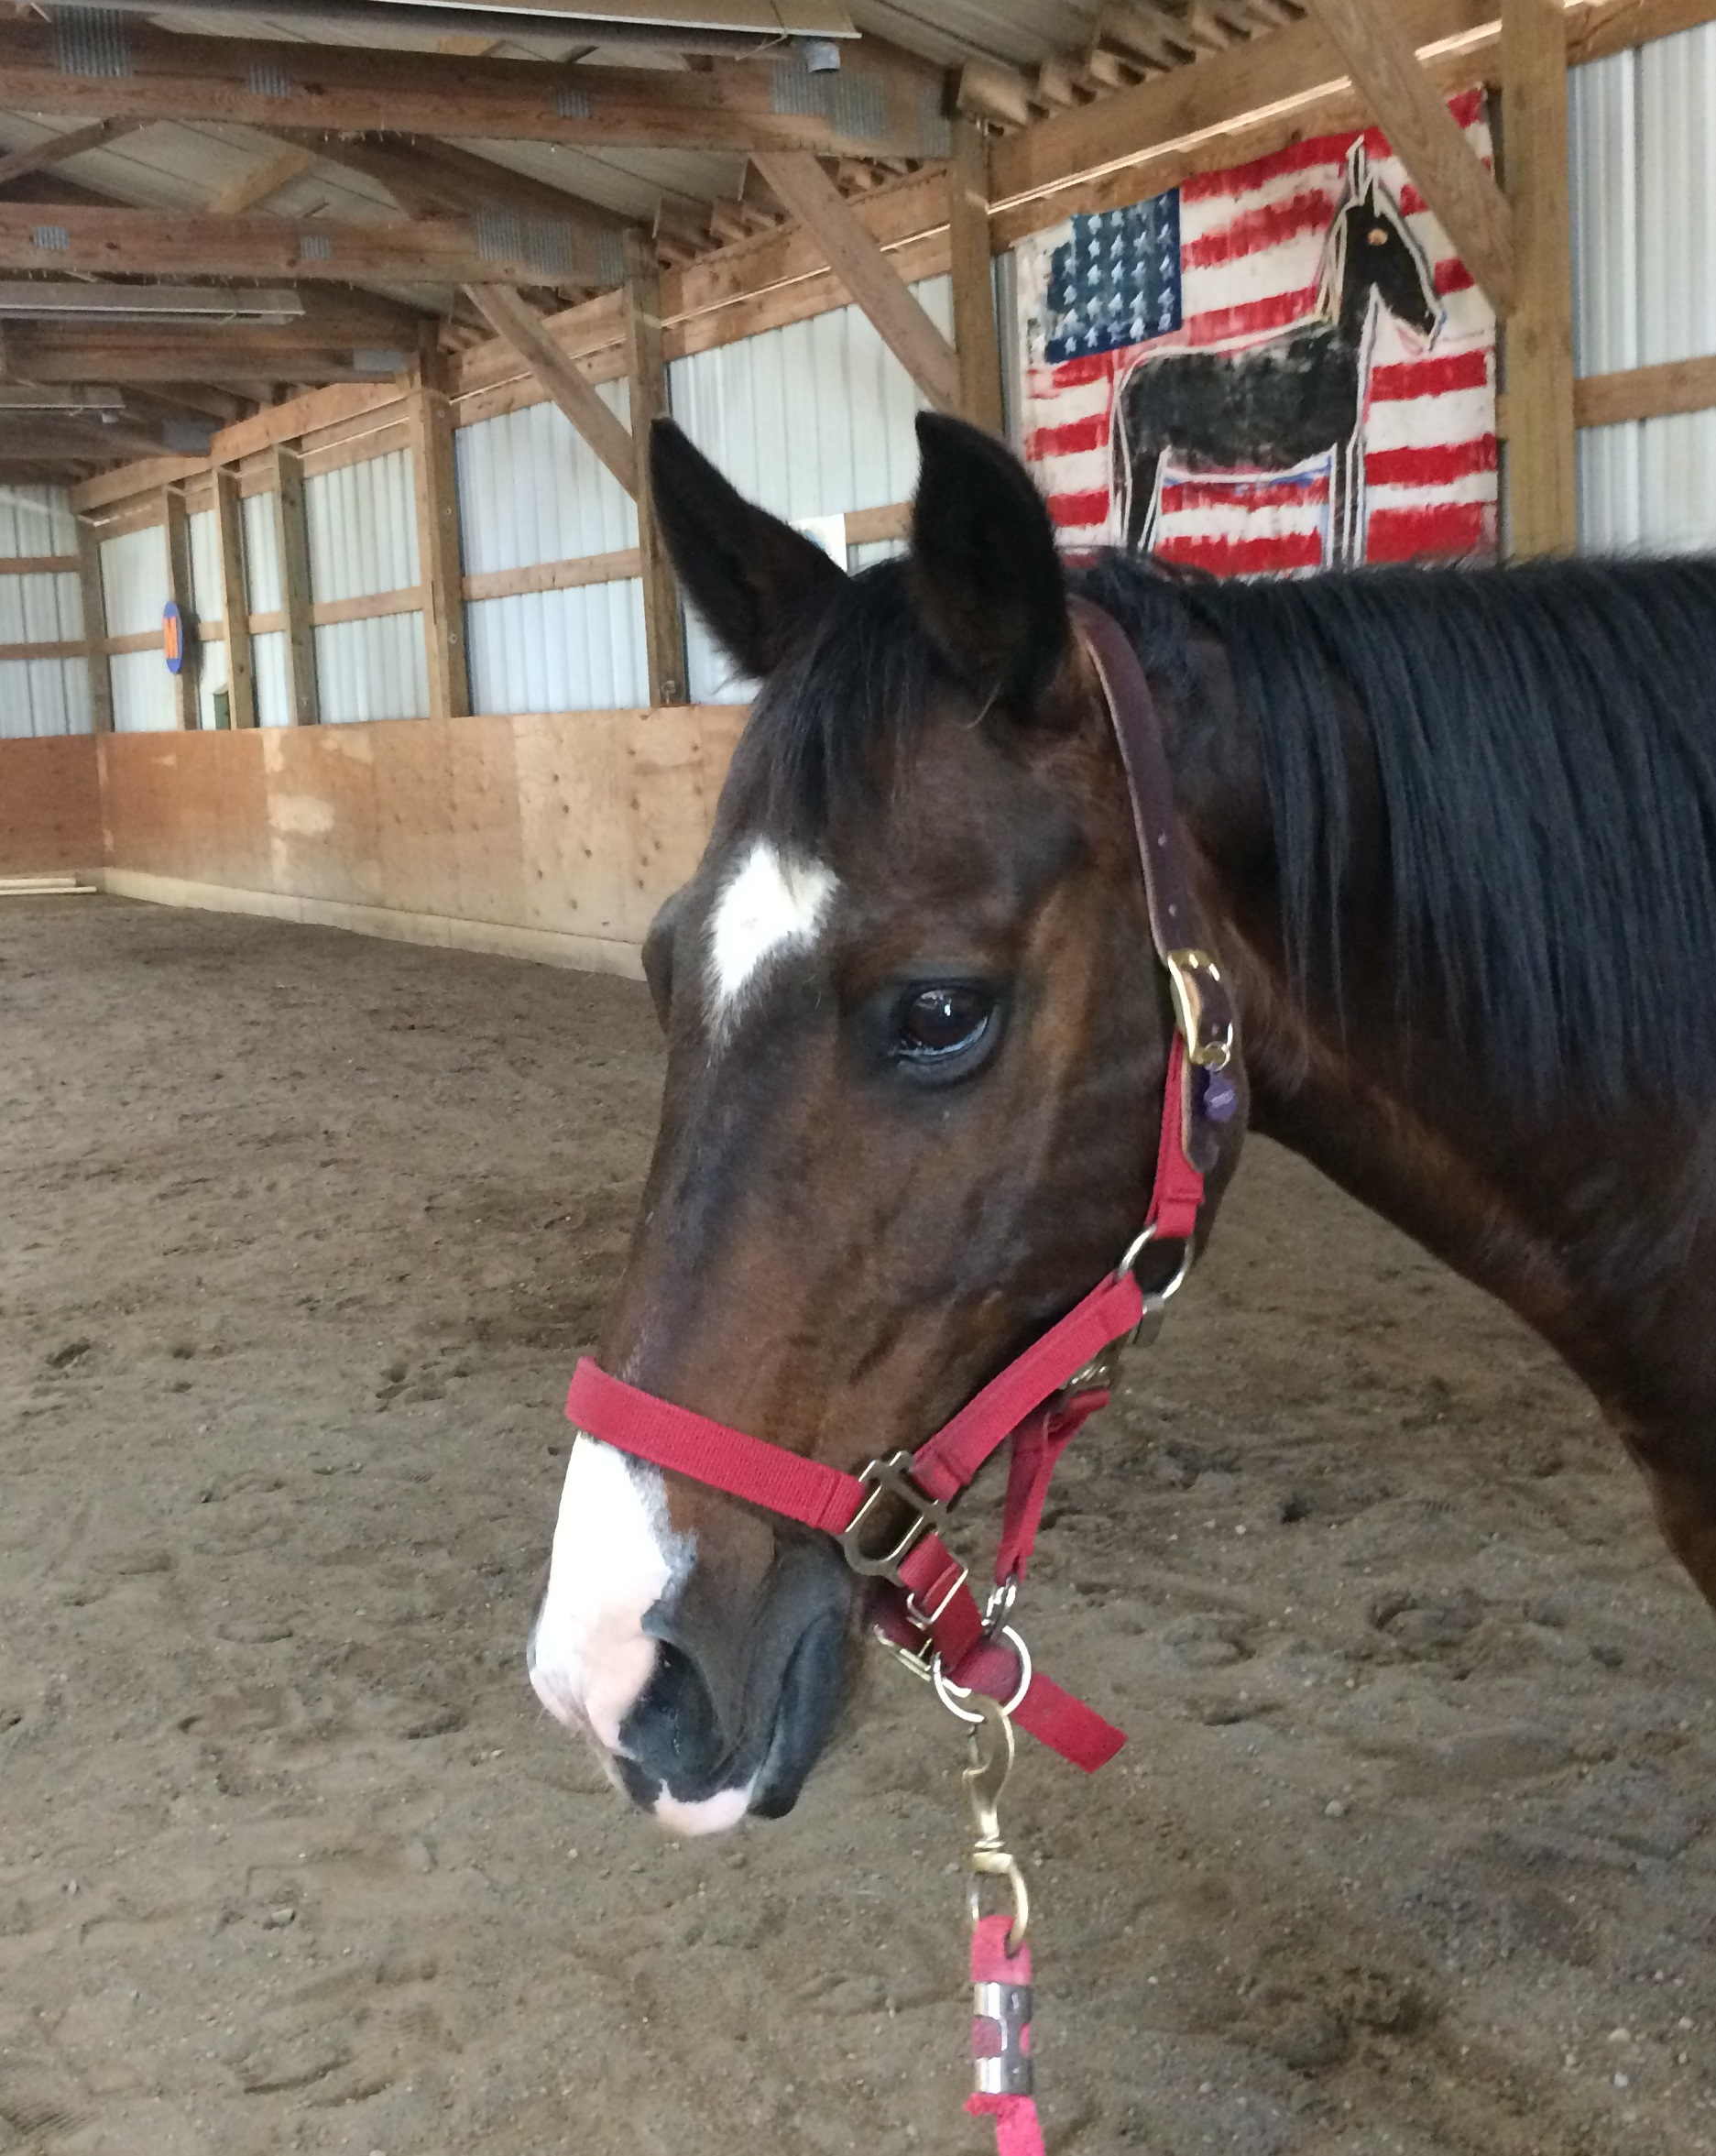 Tito - Tito is our little guy and is often chosen for riders who need a lot of physical support (it's easier to reach them with Tito, who is lower to the ground). Like our other herd members, he is very tolerant of riders who are noisy or unbalanced. He is our newest herd member, only being here since the spring of 2018. He has the cutest face and everyone falls in love when they meet him.